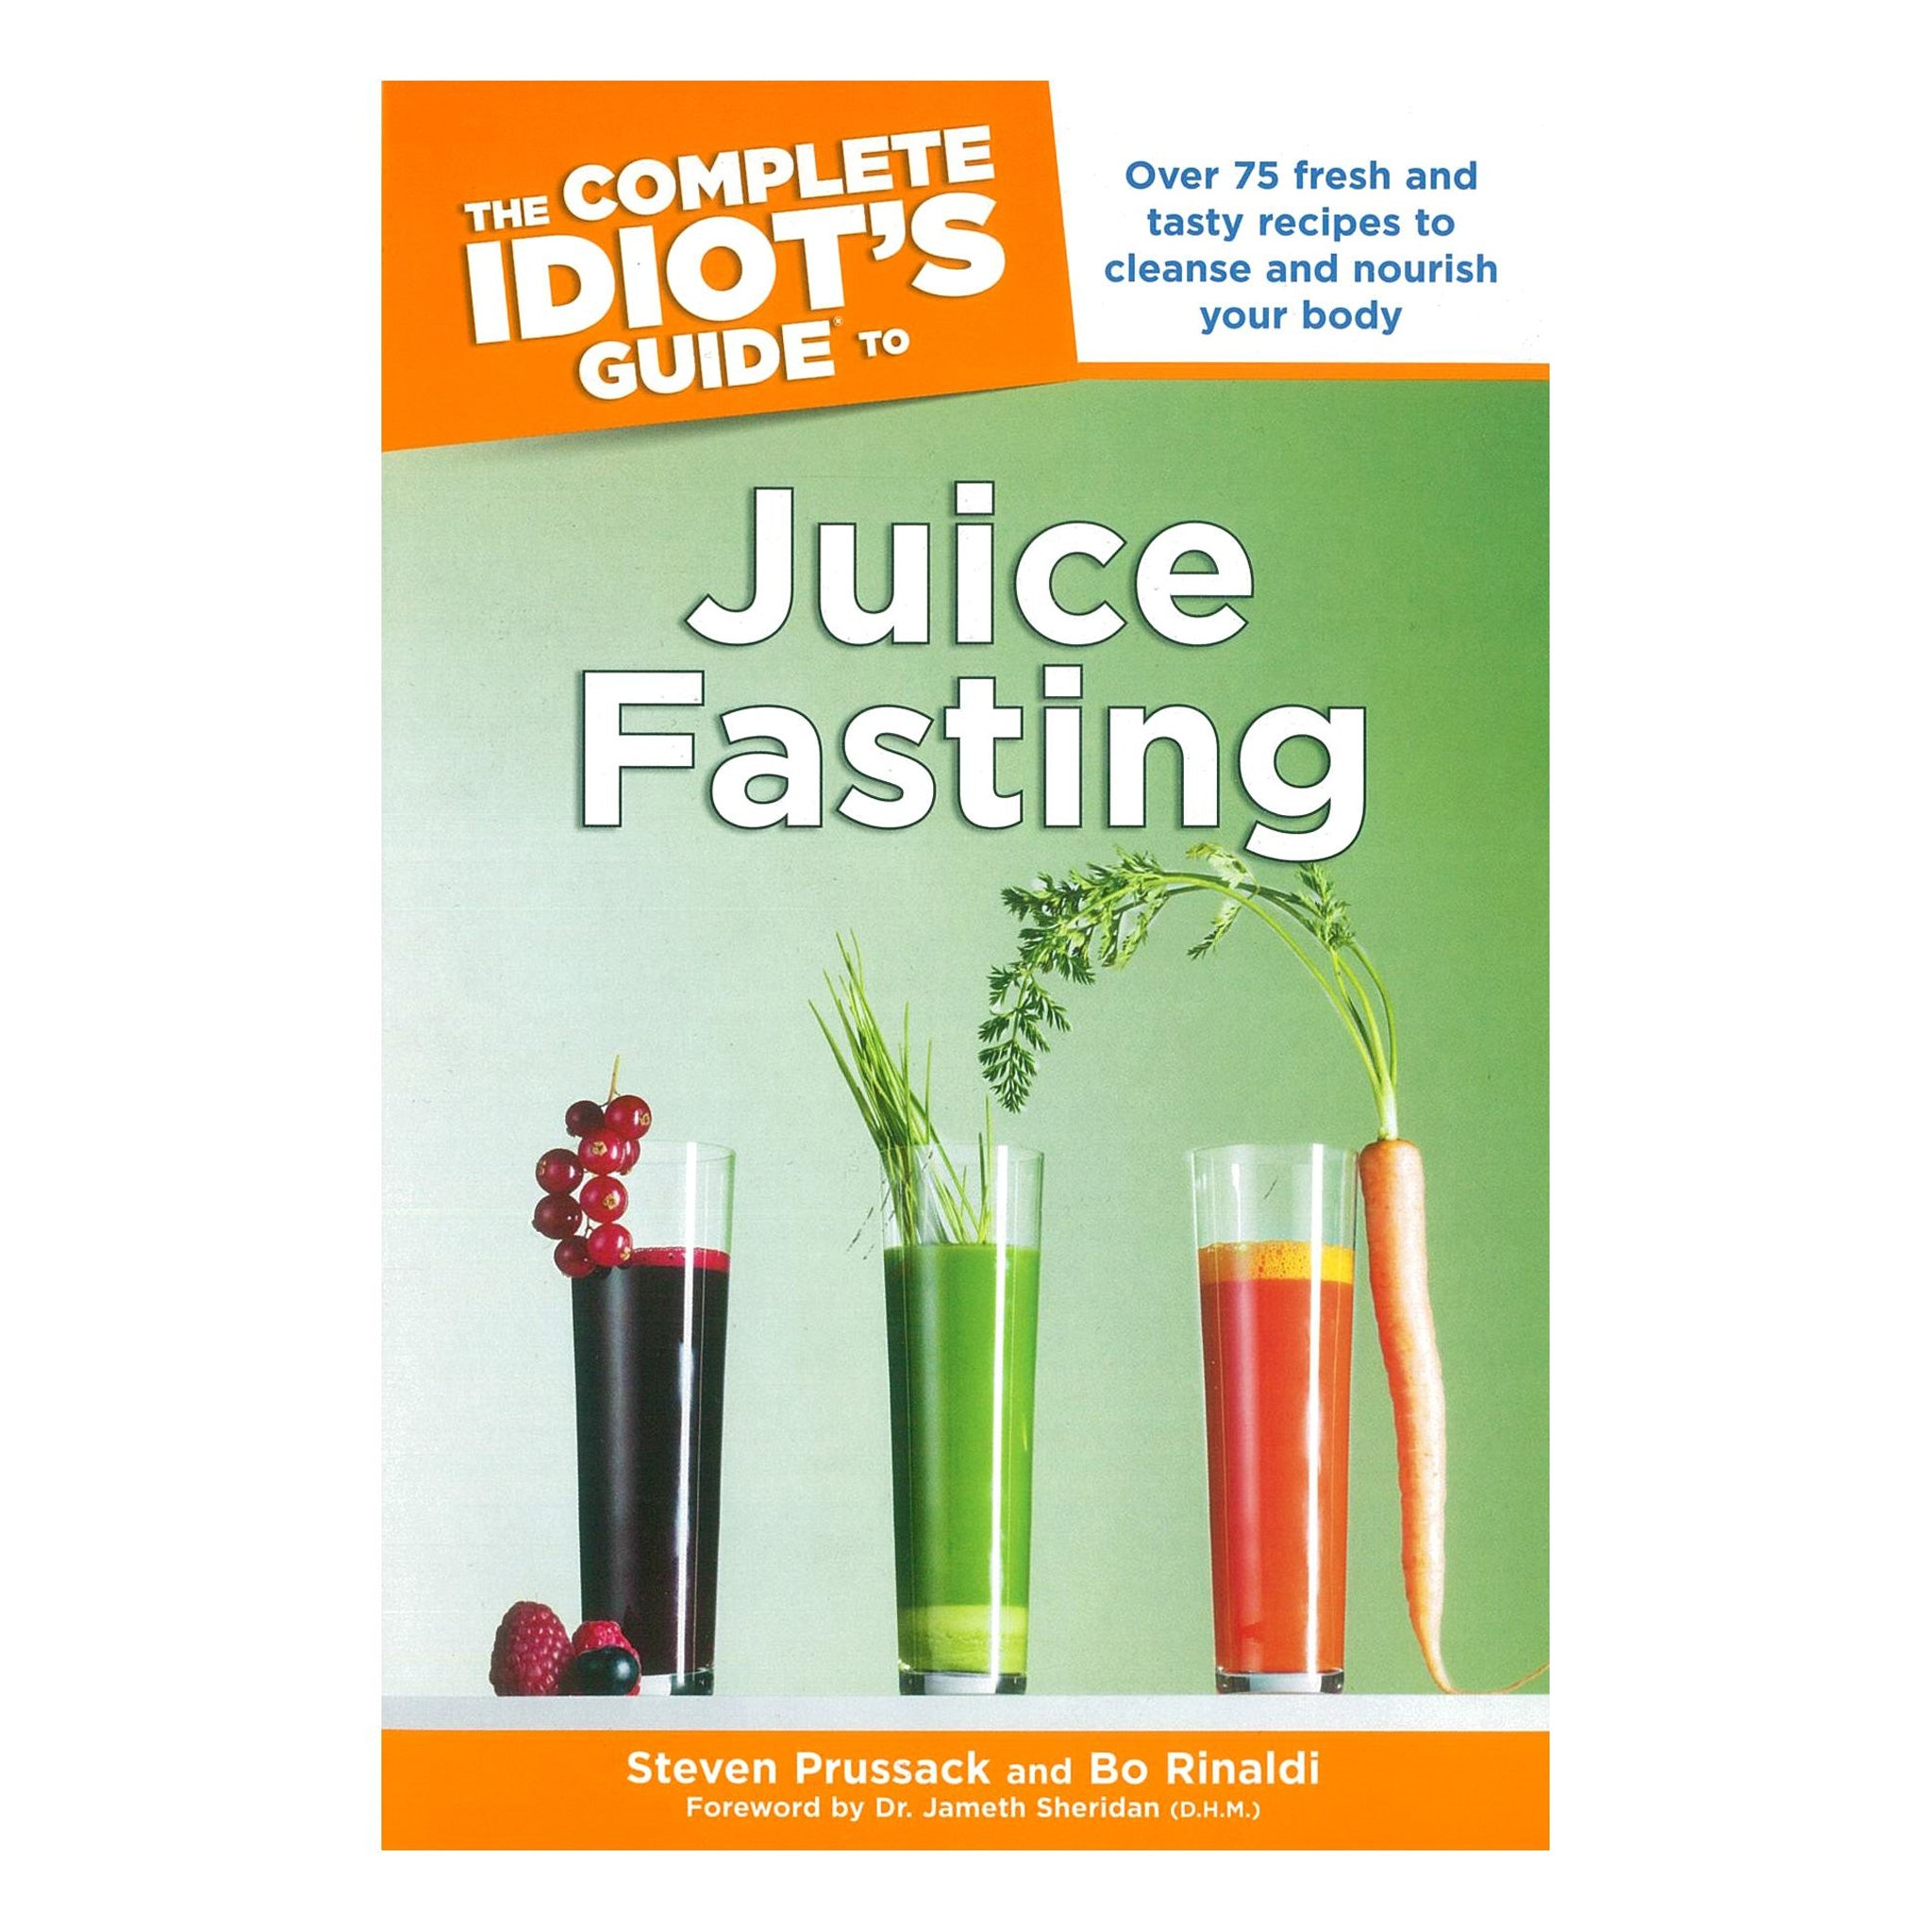 The Complete Idiot's Guide to Juice Fasting - Tribest